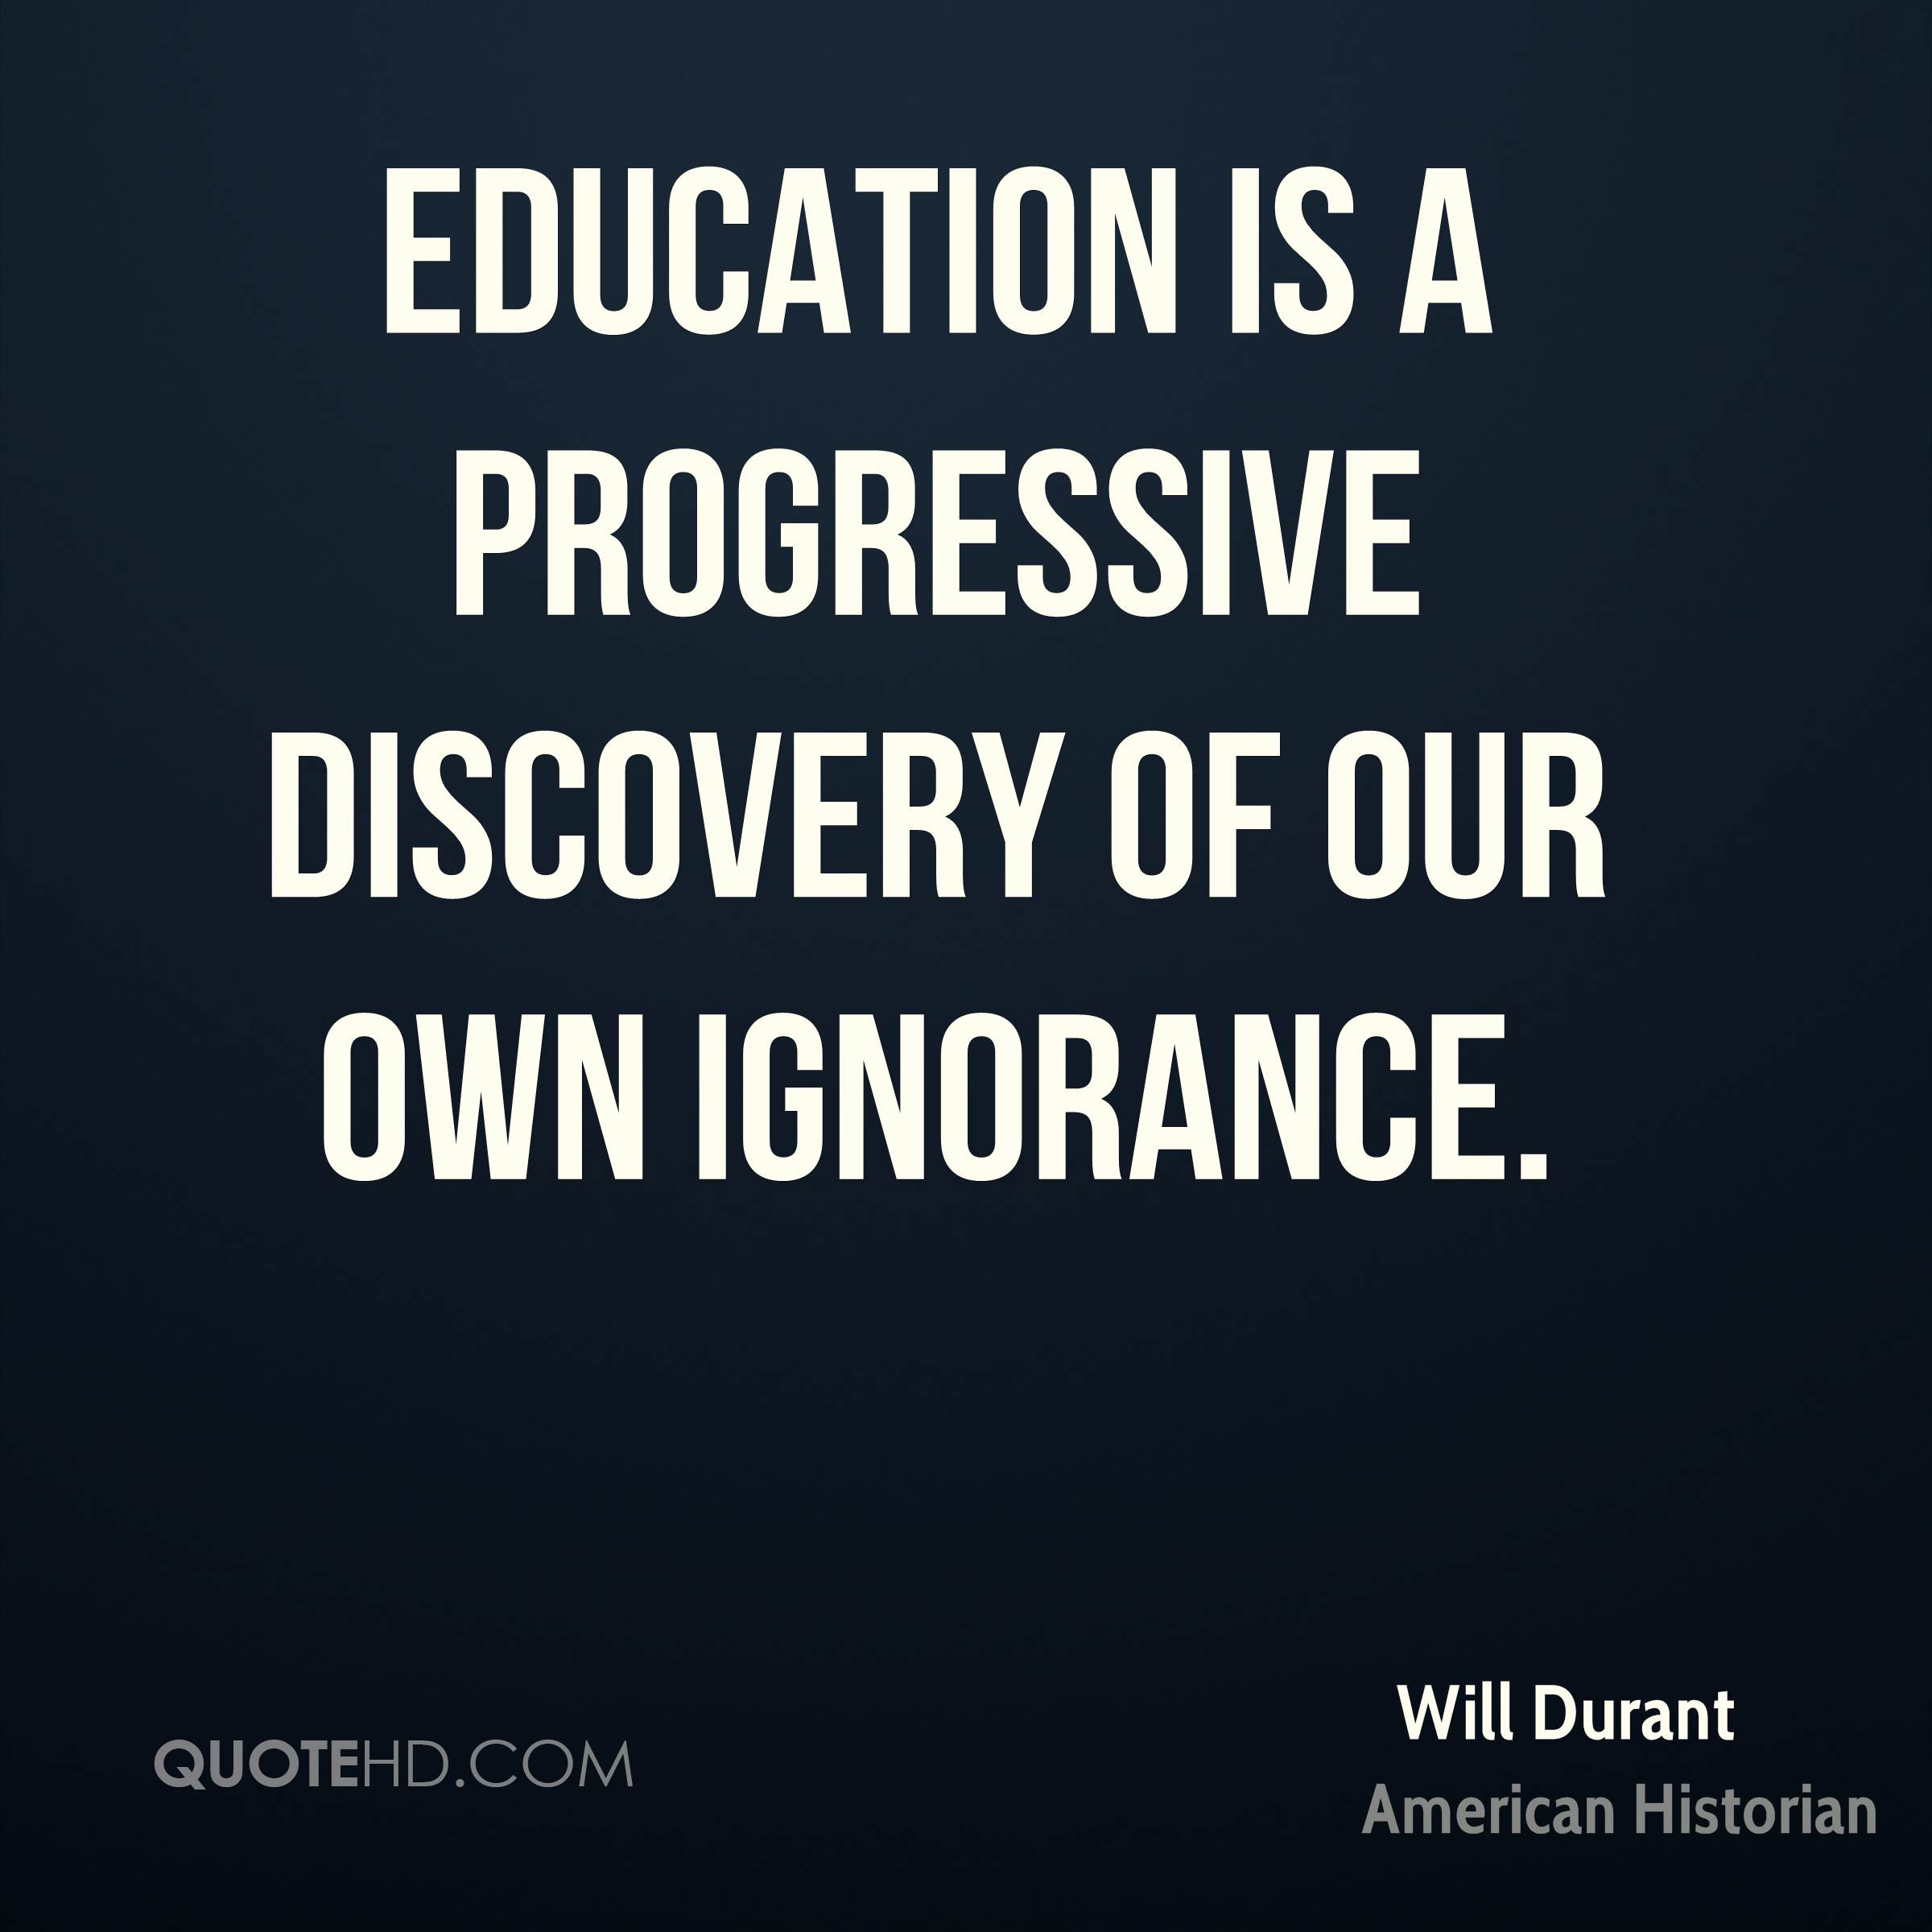 Will Durant Education Quotes Quotehd